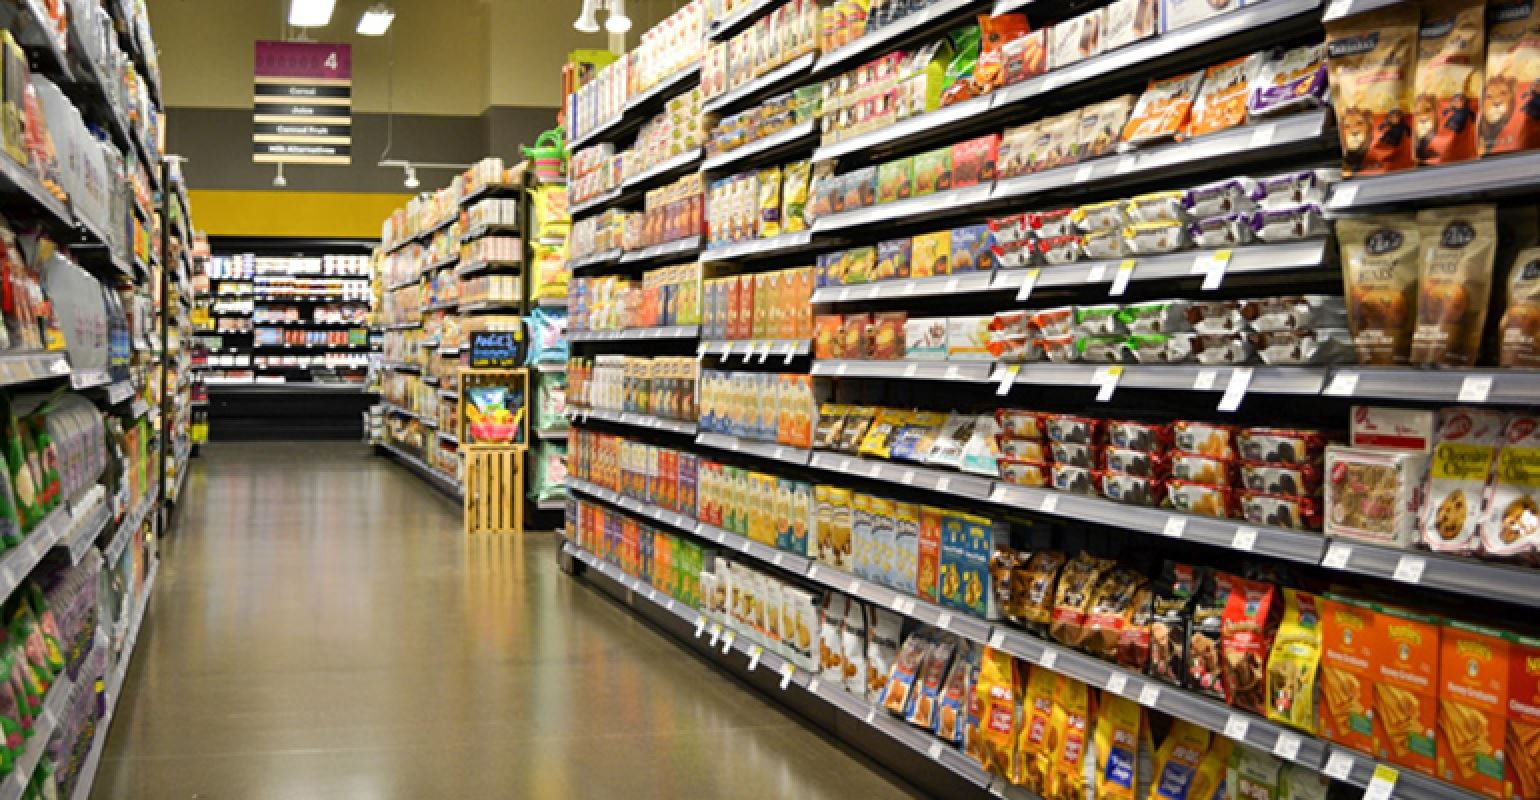 A photograph of a aisle in a grocery store.